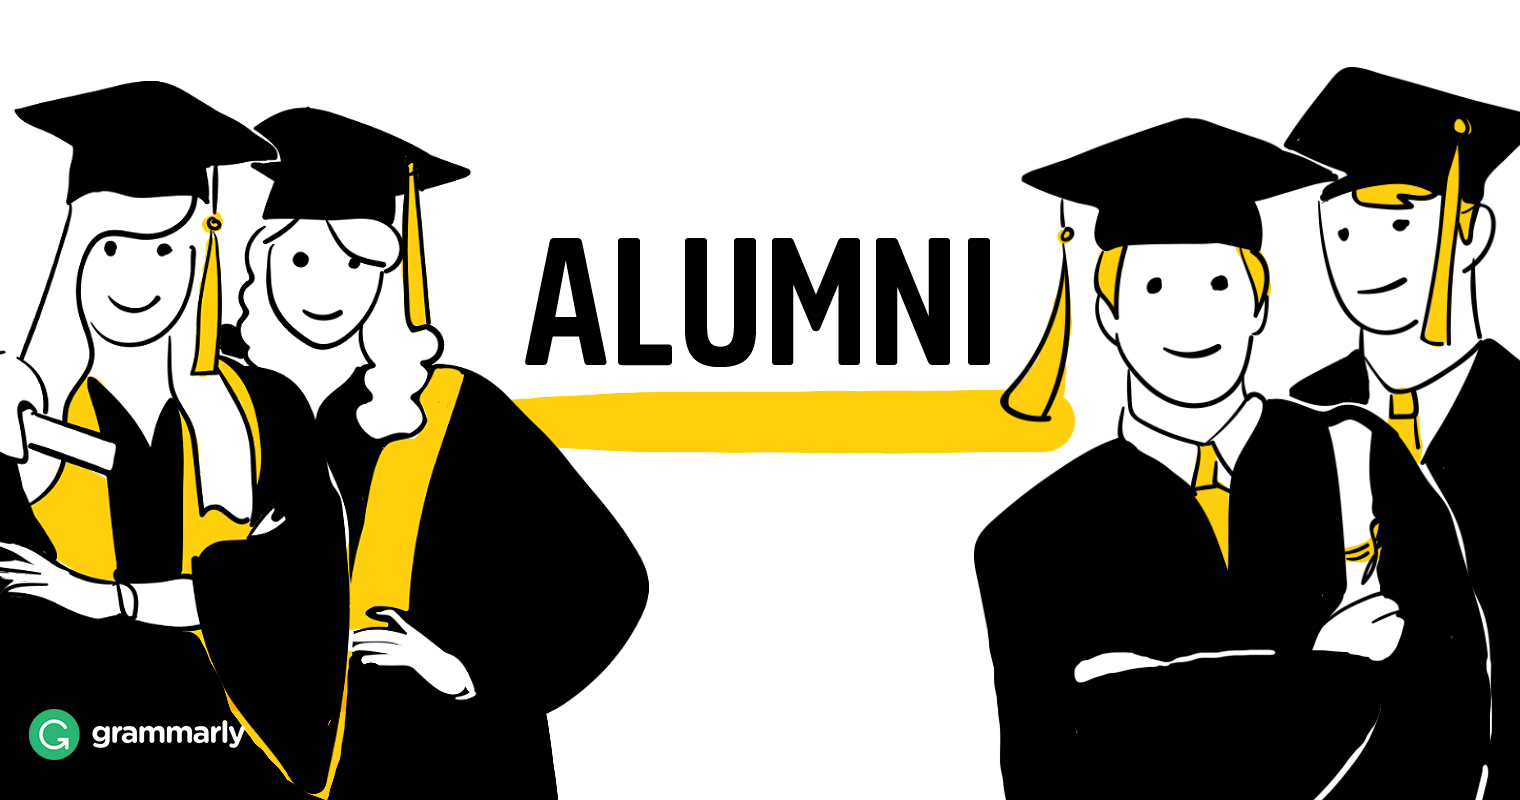 Alumna, Alumnae, Alumni, Alumnus: What's the Difference?